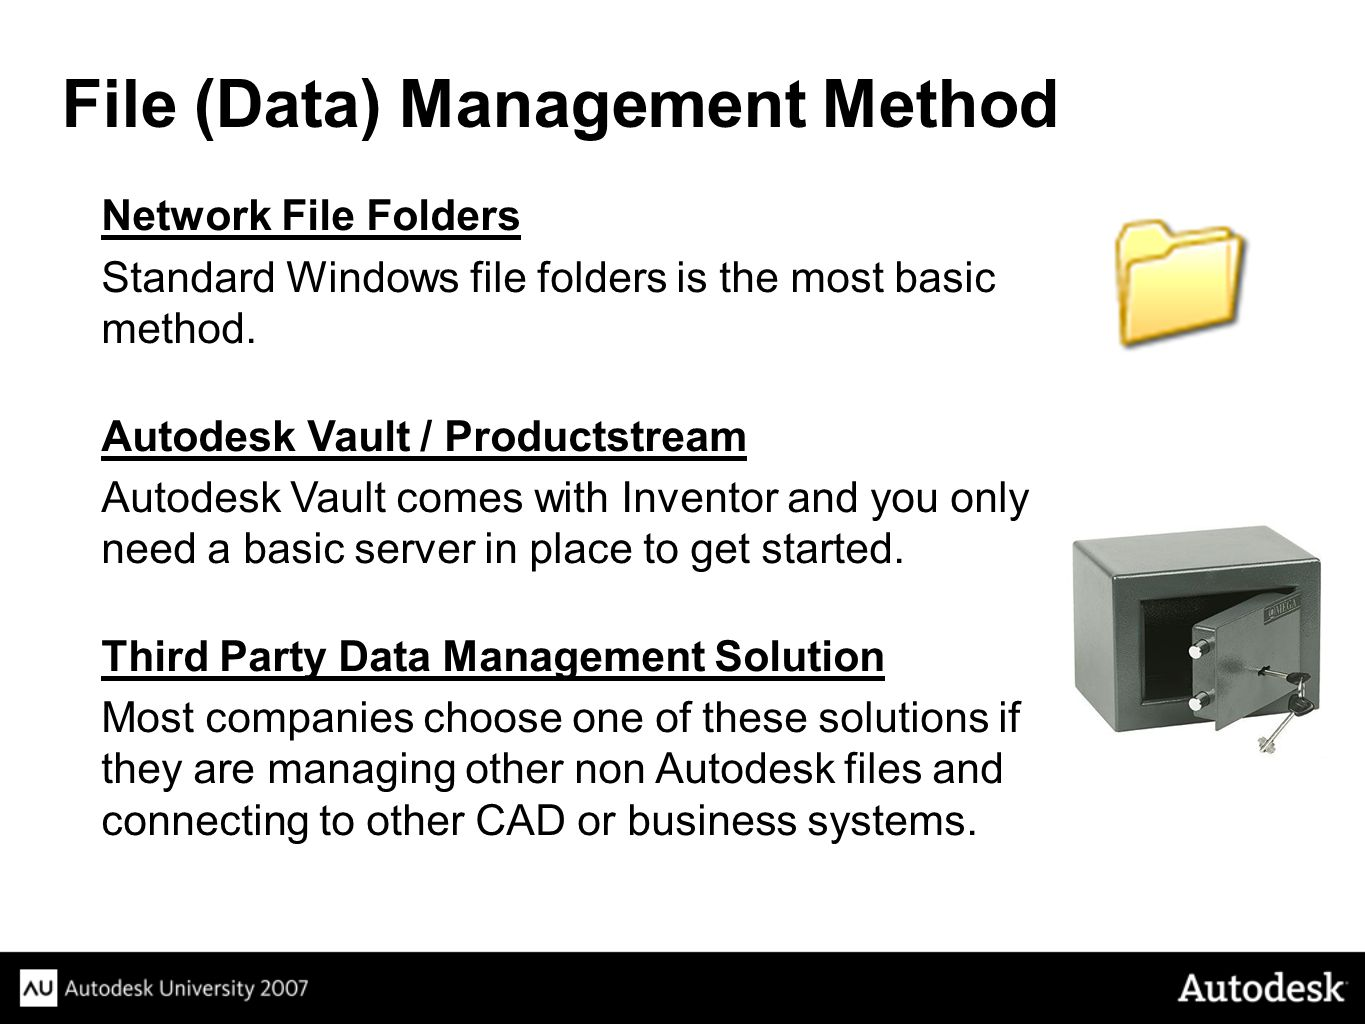 File (Data) Management Method